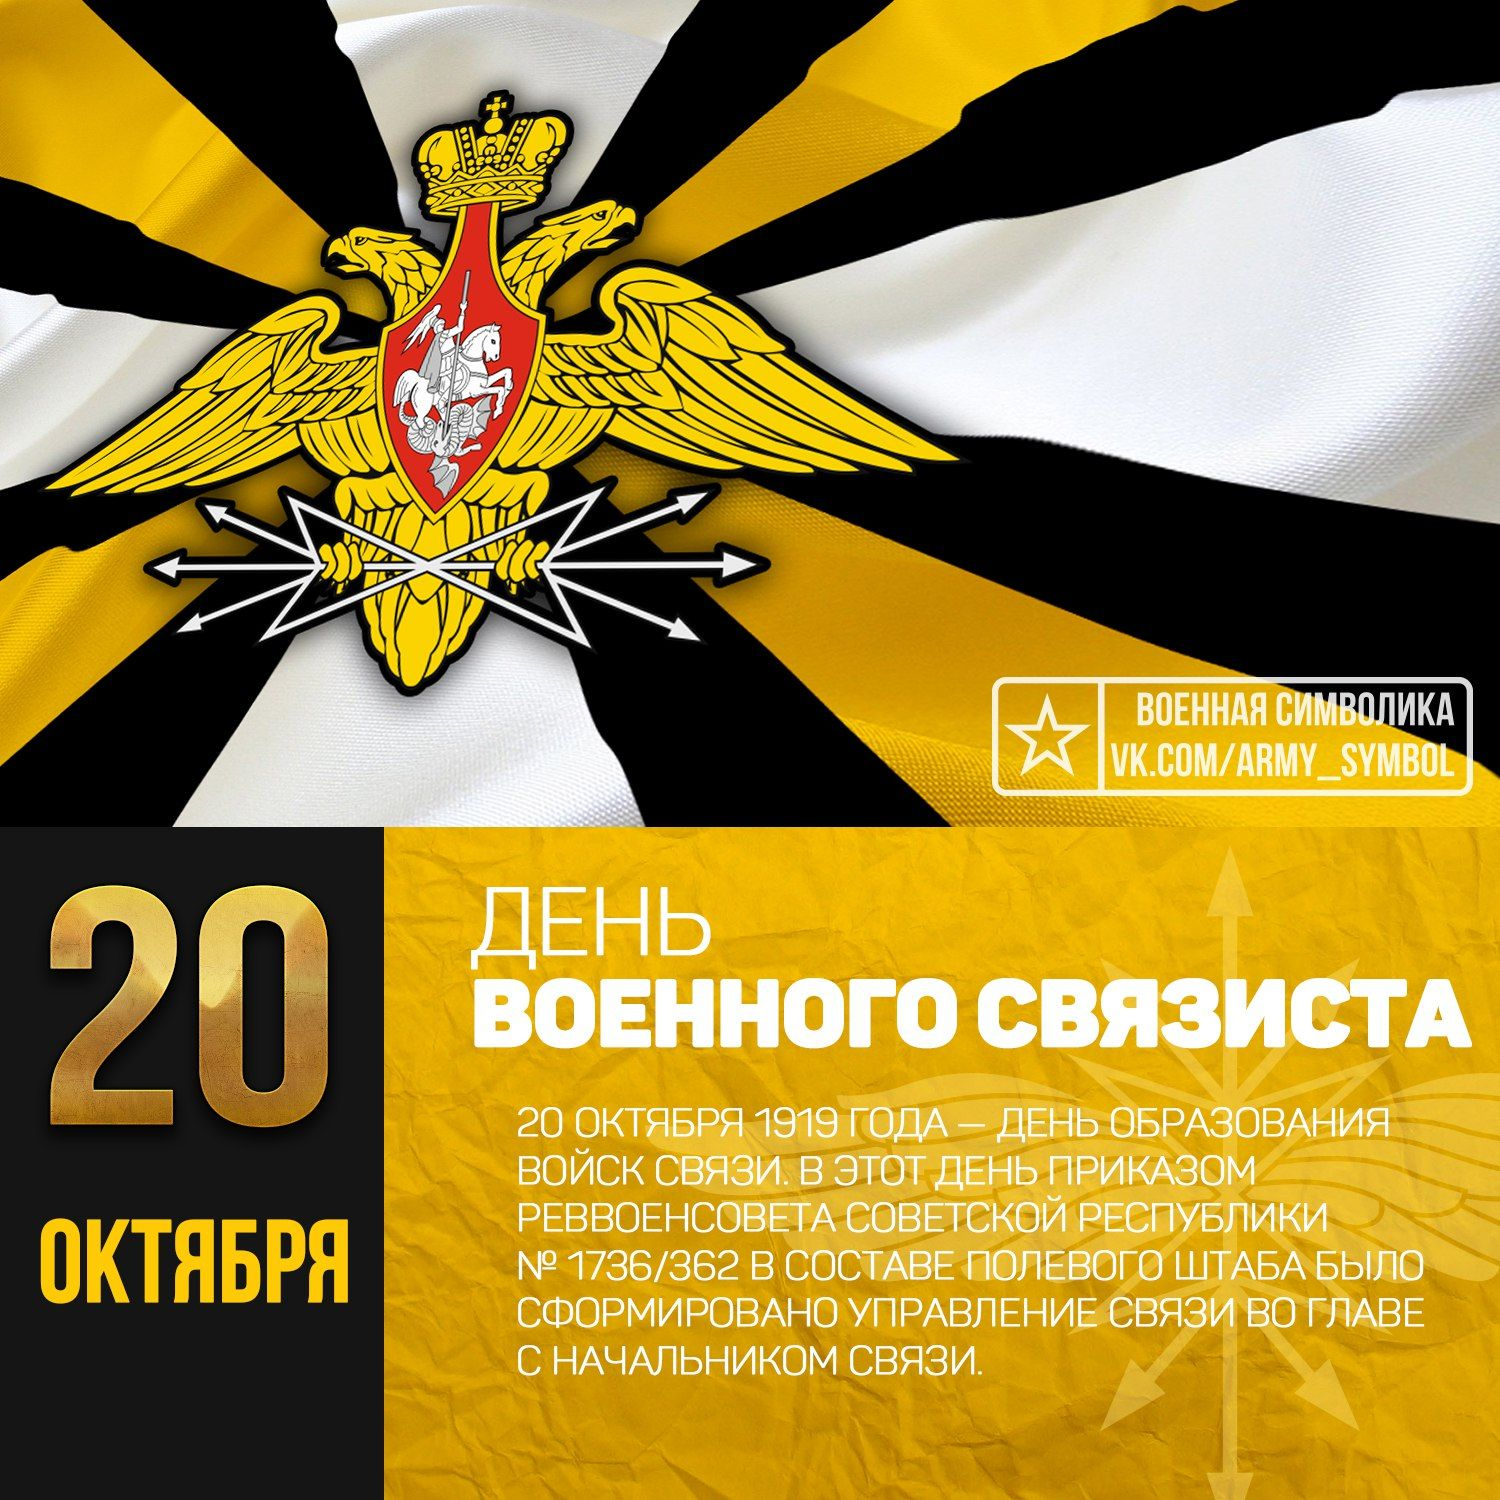 Security services in Lviv and region: a selection of sites